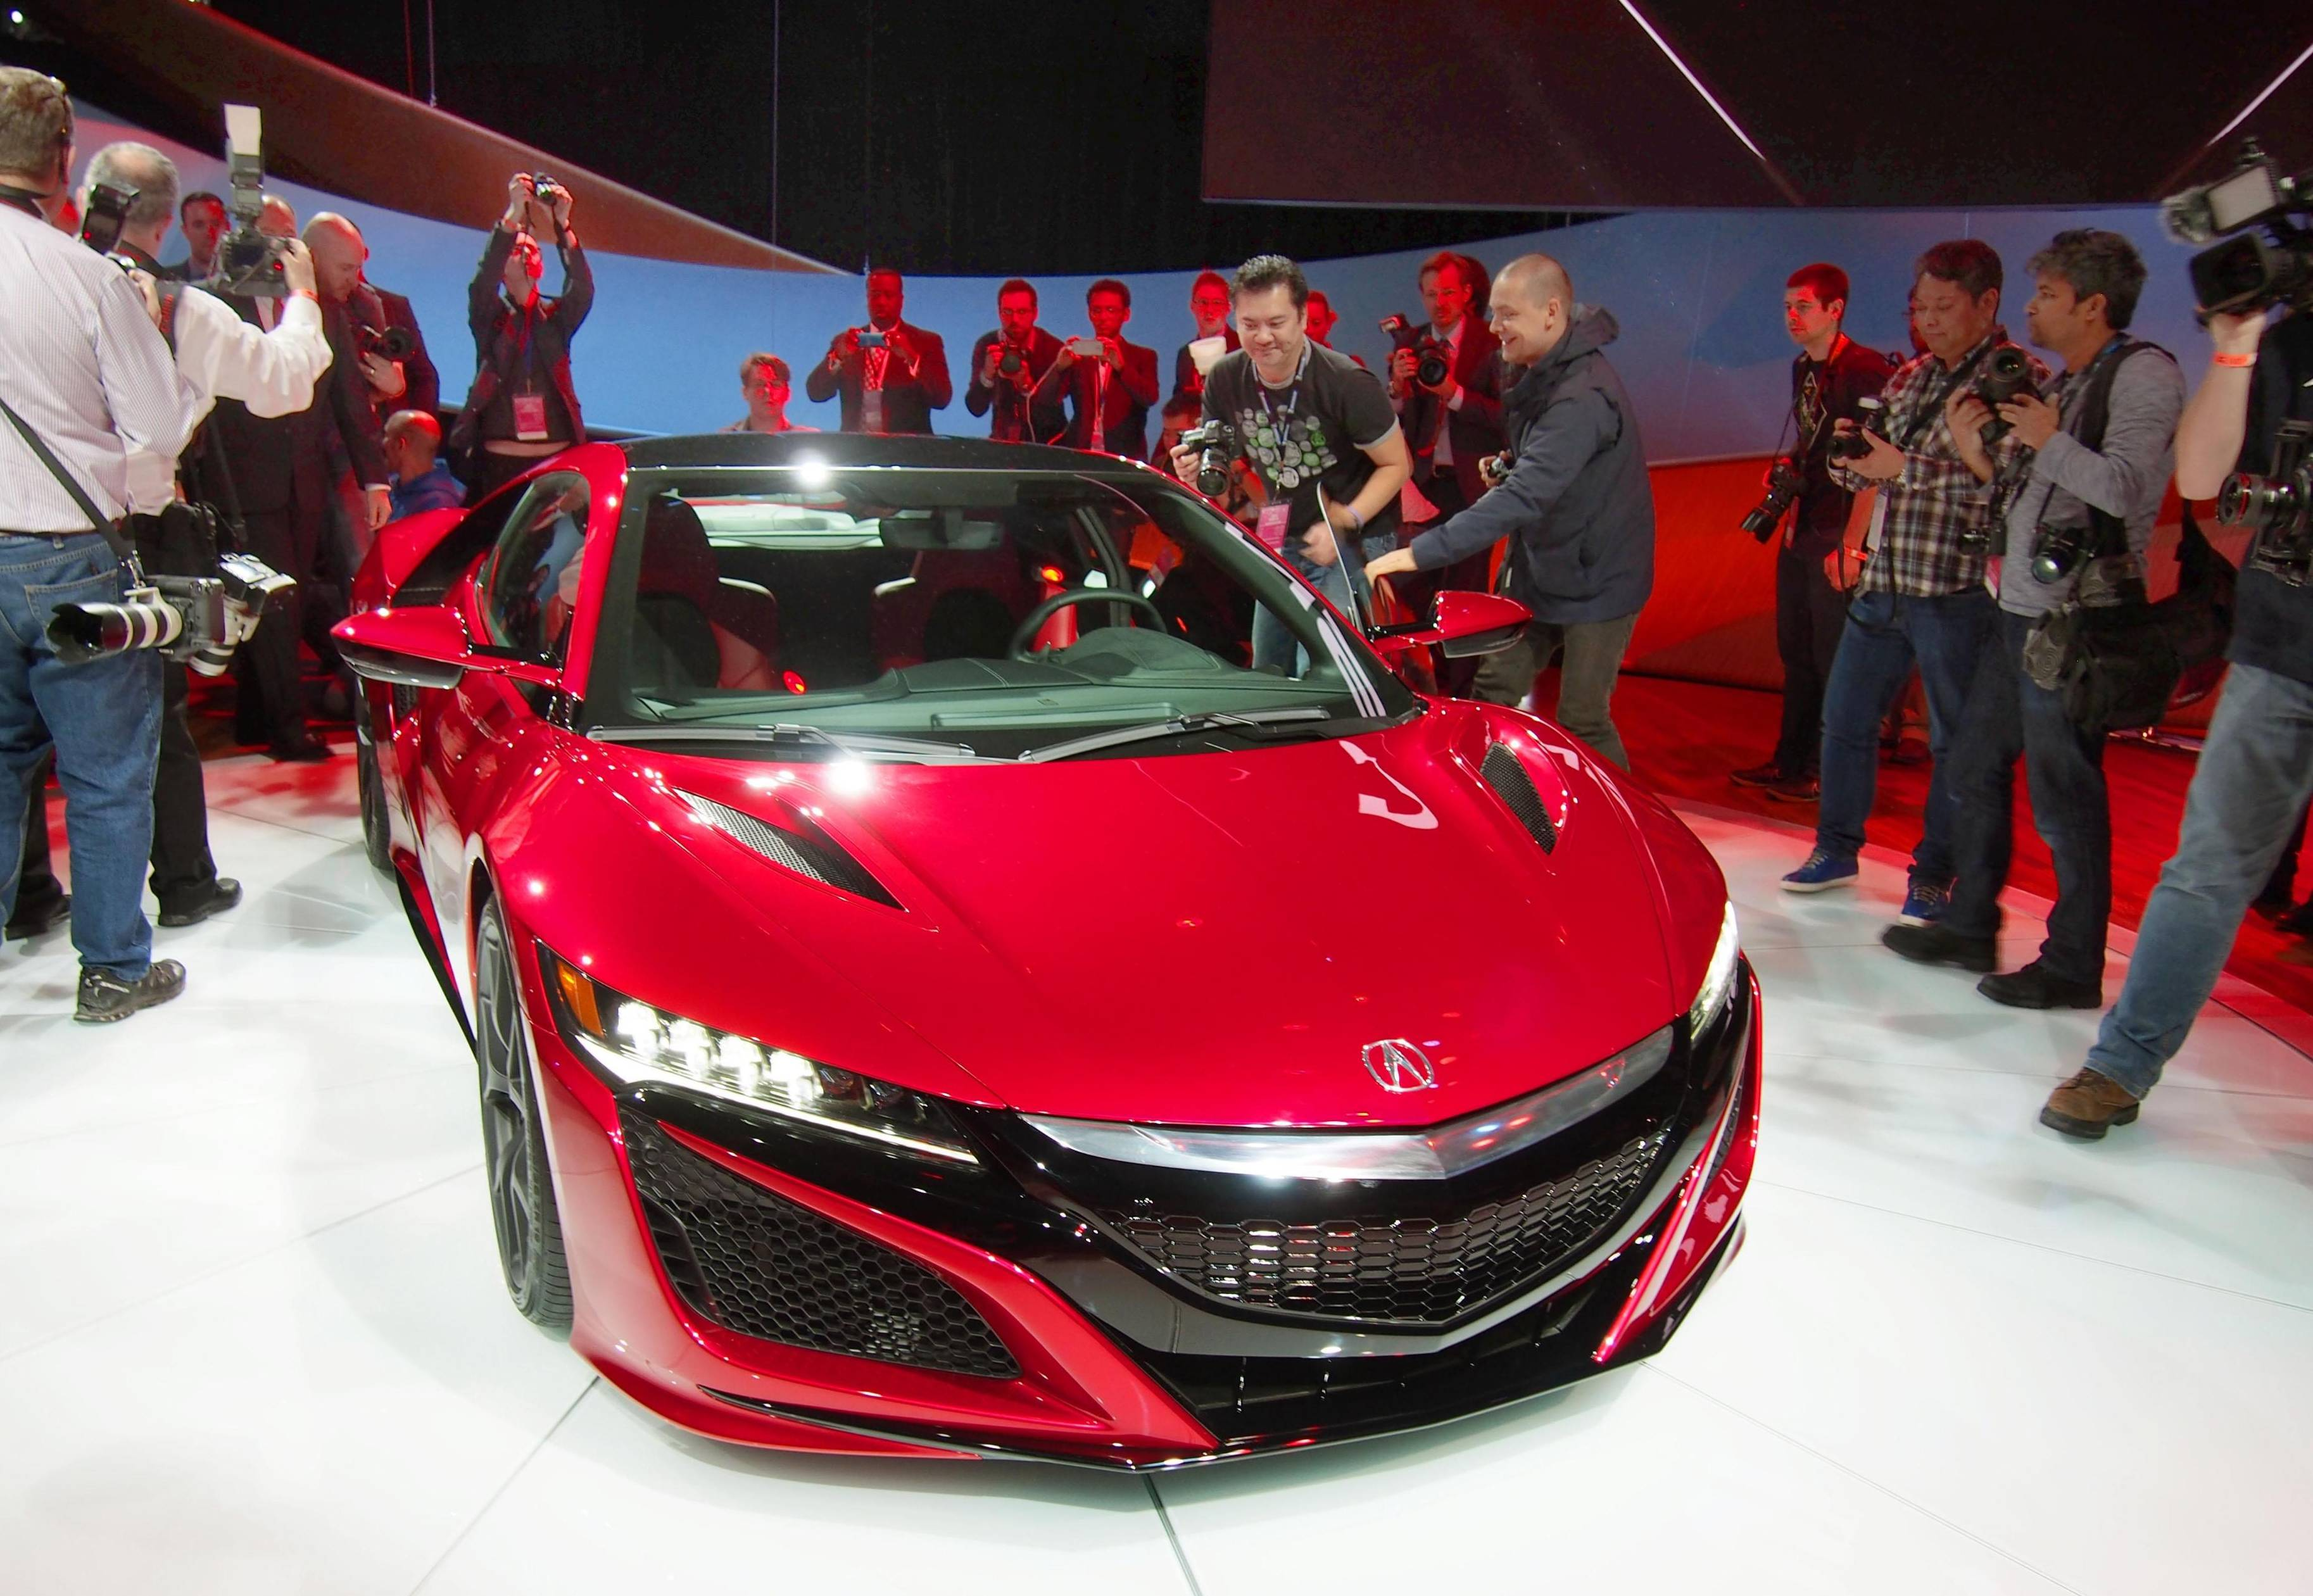 American Honda Motor Company >> Japanese automakers debut sports cars, pickups at Detroit show | The Japan Times